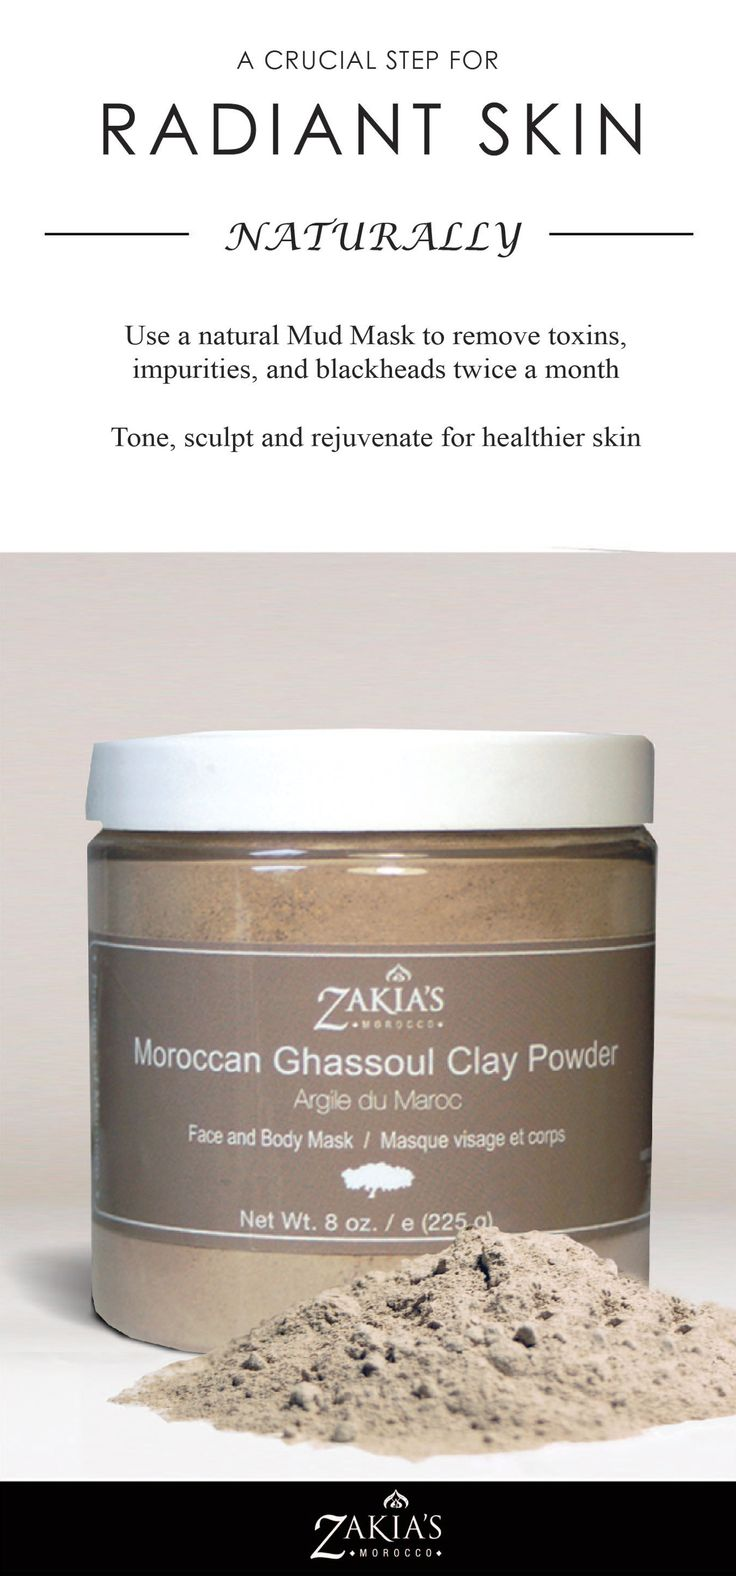 I love Ghassoul.  It is great for deep cleaning and giving body to my hair and helps detox and clean my skin like nothing else.  Love it!